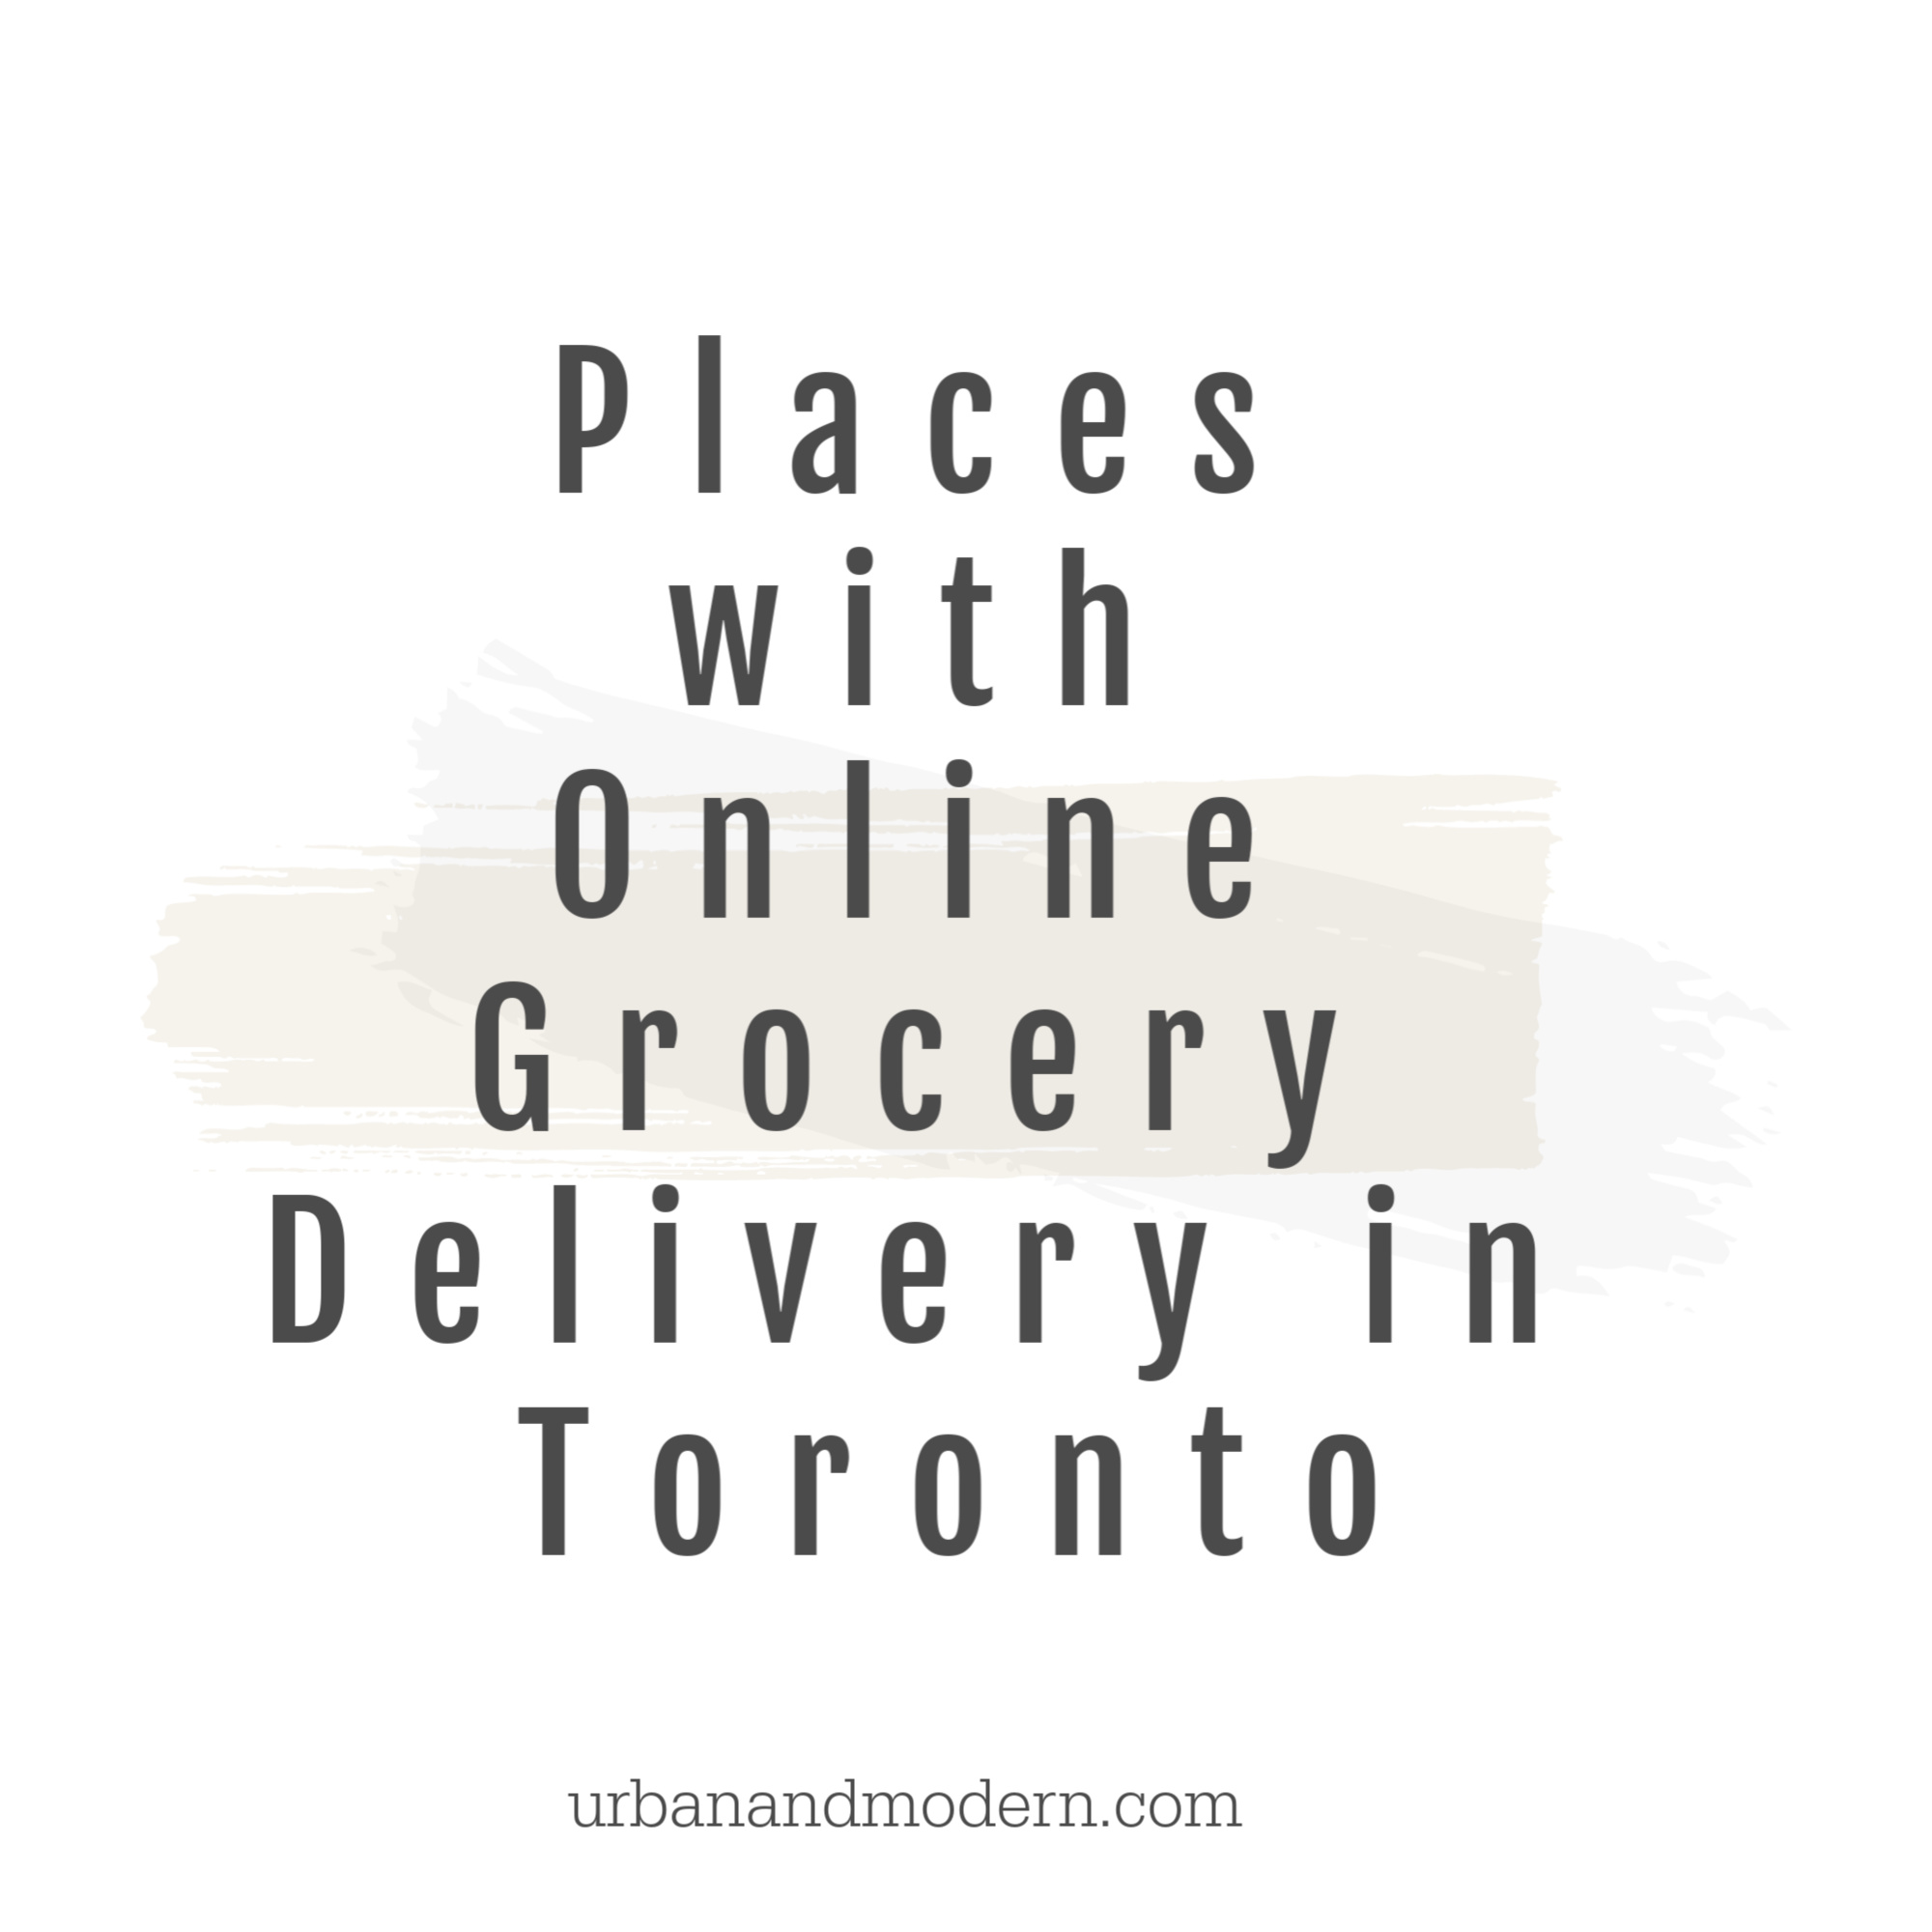 Places with Online Grocery Delivery in Toronto